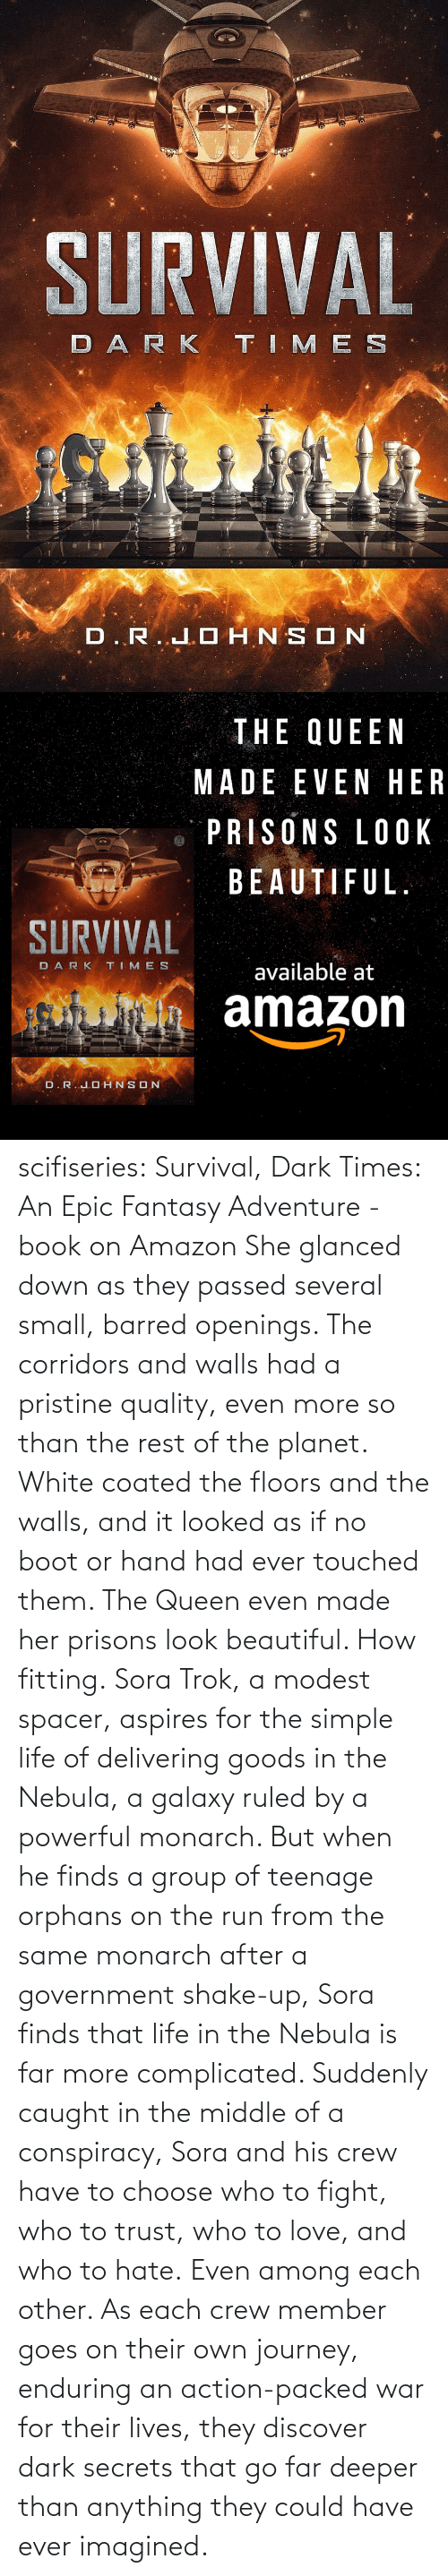 epic: scifiseries: Survival, Dark Times: An Epic Fantasy Adventure - book on Amazon  She glanced down as they  passed several small, barred openings. The corridors and walls had a  pristine quality, even more so than the rest of the planet. White coated  the floors and the walls, and it looked as if no boot or hand had ever  touched them.  The Queen even made her prisons look beautiful.  How fitting. Sora  Trok, a modest spacer, aspires for the simple life of delivering goods  in the Nebula, a galaxy ruled by a powerful monarch. But when he finds a  group of teenage orphans on the run from the same monarch after a  government shake-up, Sora finds that life in the Nebula is far more complicated.  Suddenly  caught in the middle of a conspiracy, Sora and his crew have to choose  who to fight, who to trust, who to love, and who to hate. Even among each other.  As  each crew member goes on their own journey, enduring an action-packed  war for their lives, they discover dark secrets that go far deeper than  anything they could have ever imagined.